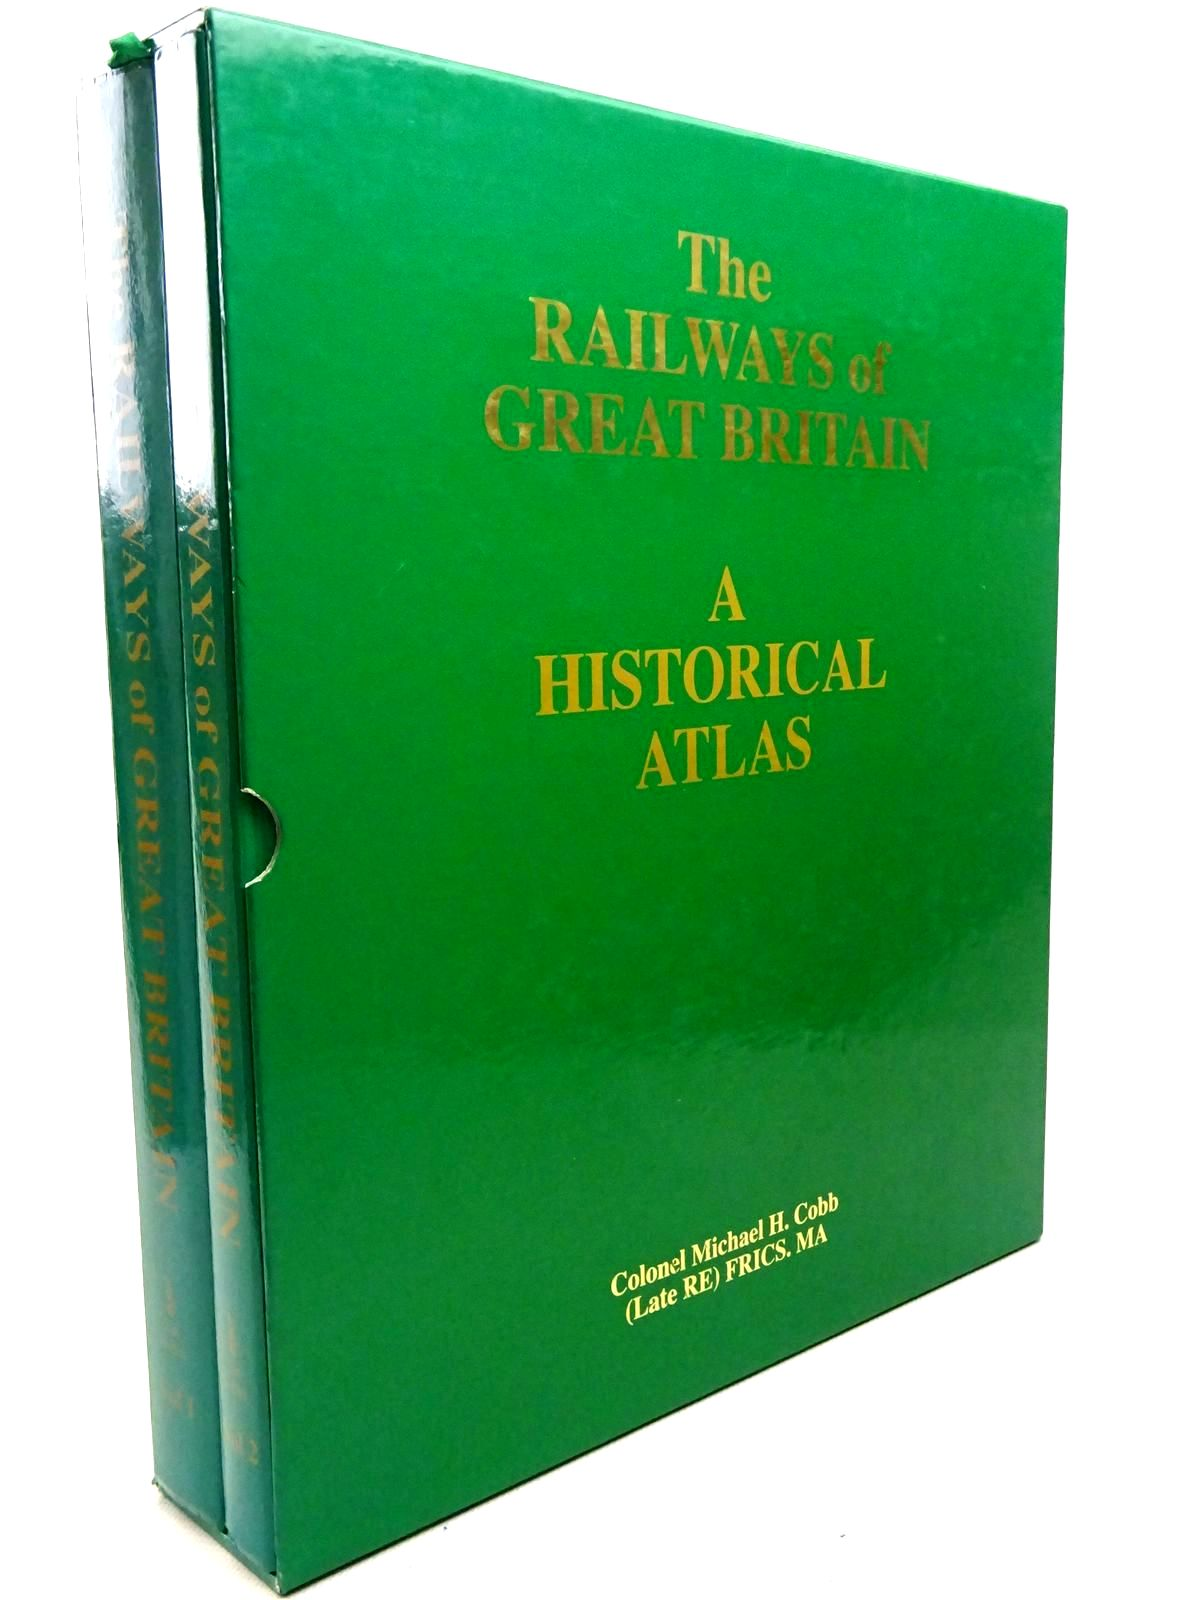 Photo of THE RAILWAYS OF GREAT BRITAIN A HISTORICAL ATLAS (2 VOLUMES) written by Cobb, M.H. published by Ian Allan (STOCK CODE: 2126392)  for sale by Stella & Rose's Books